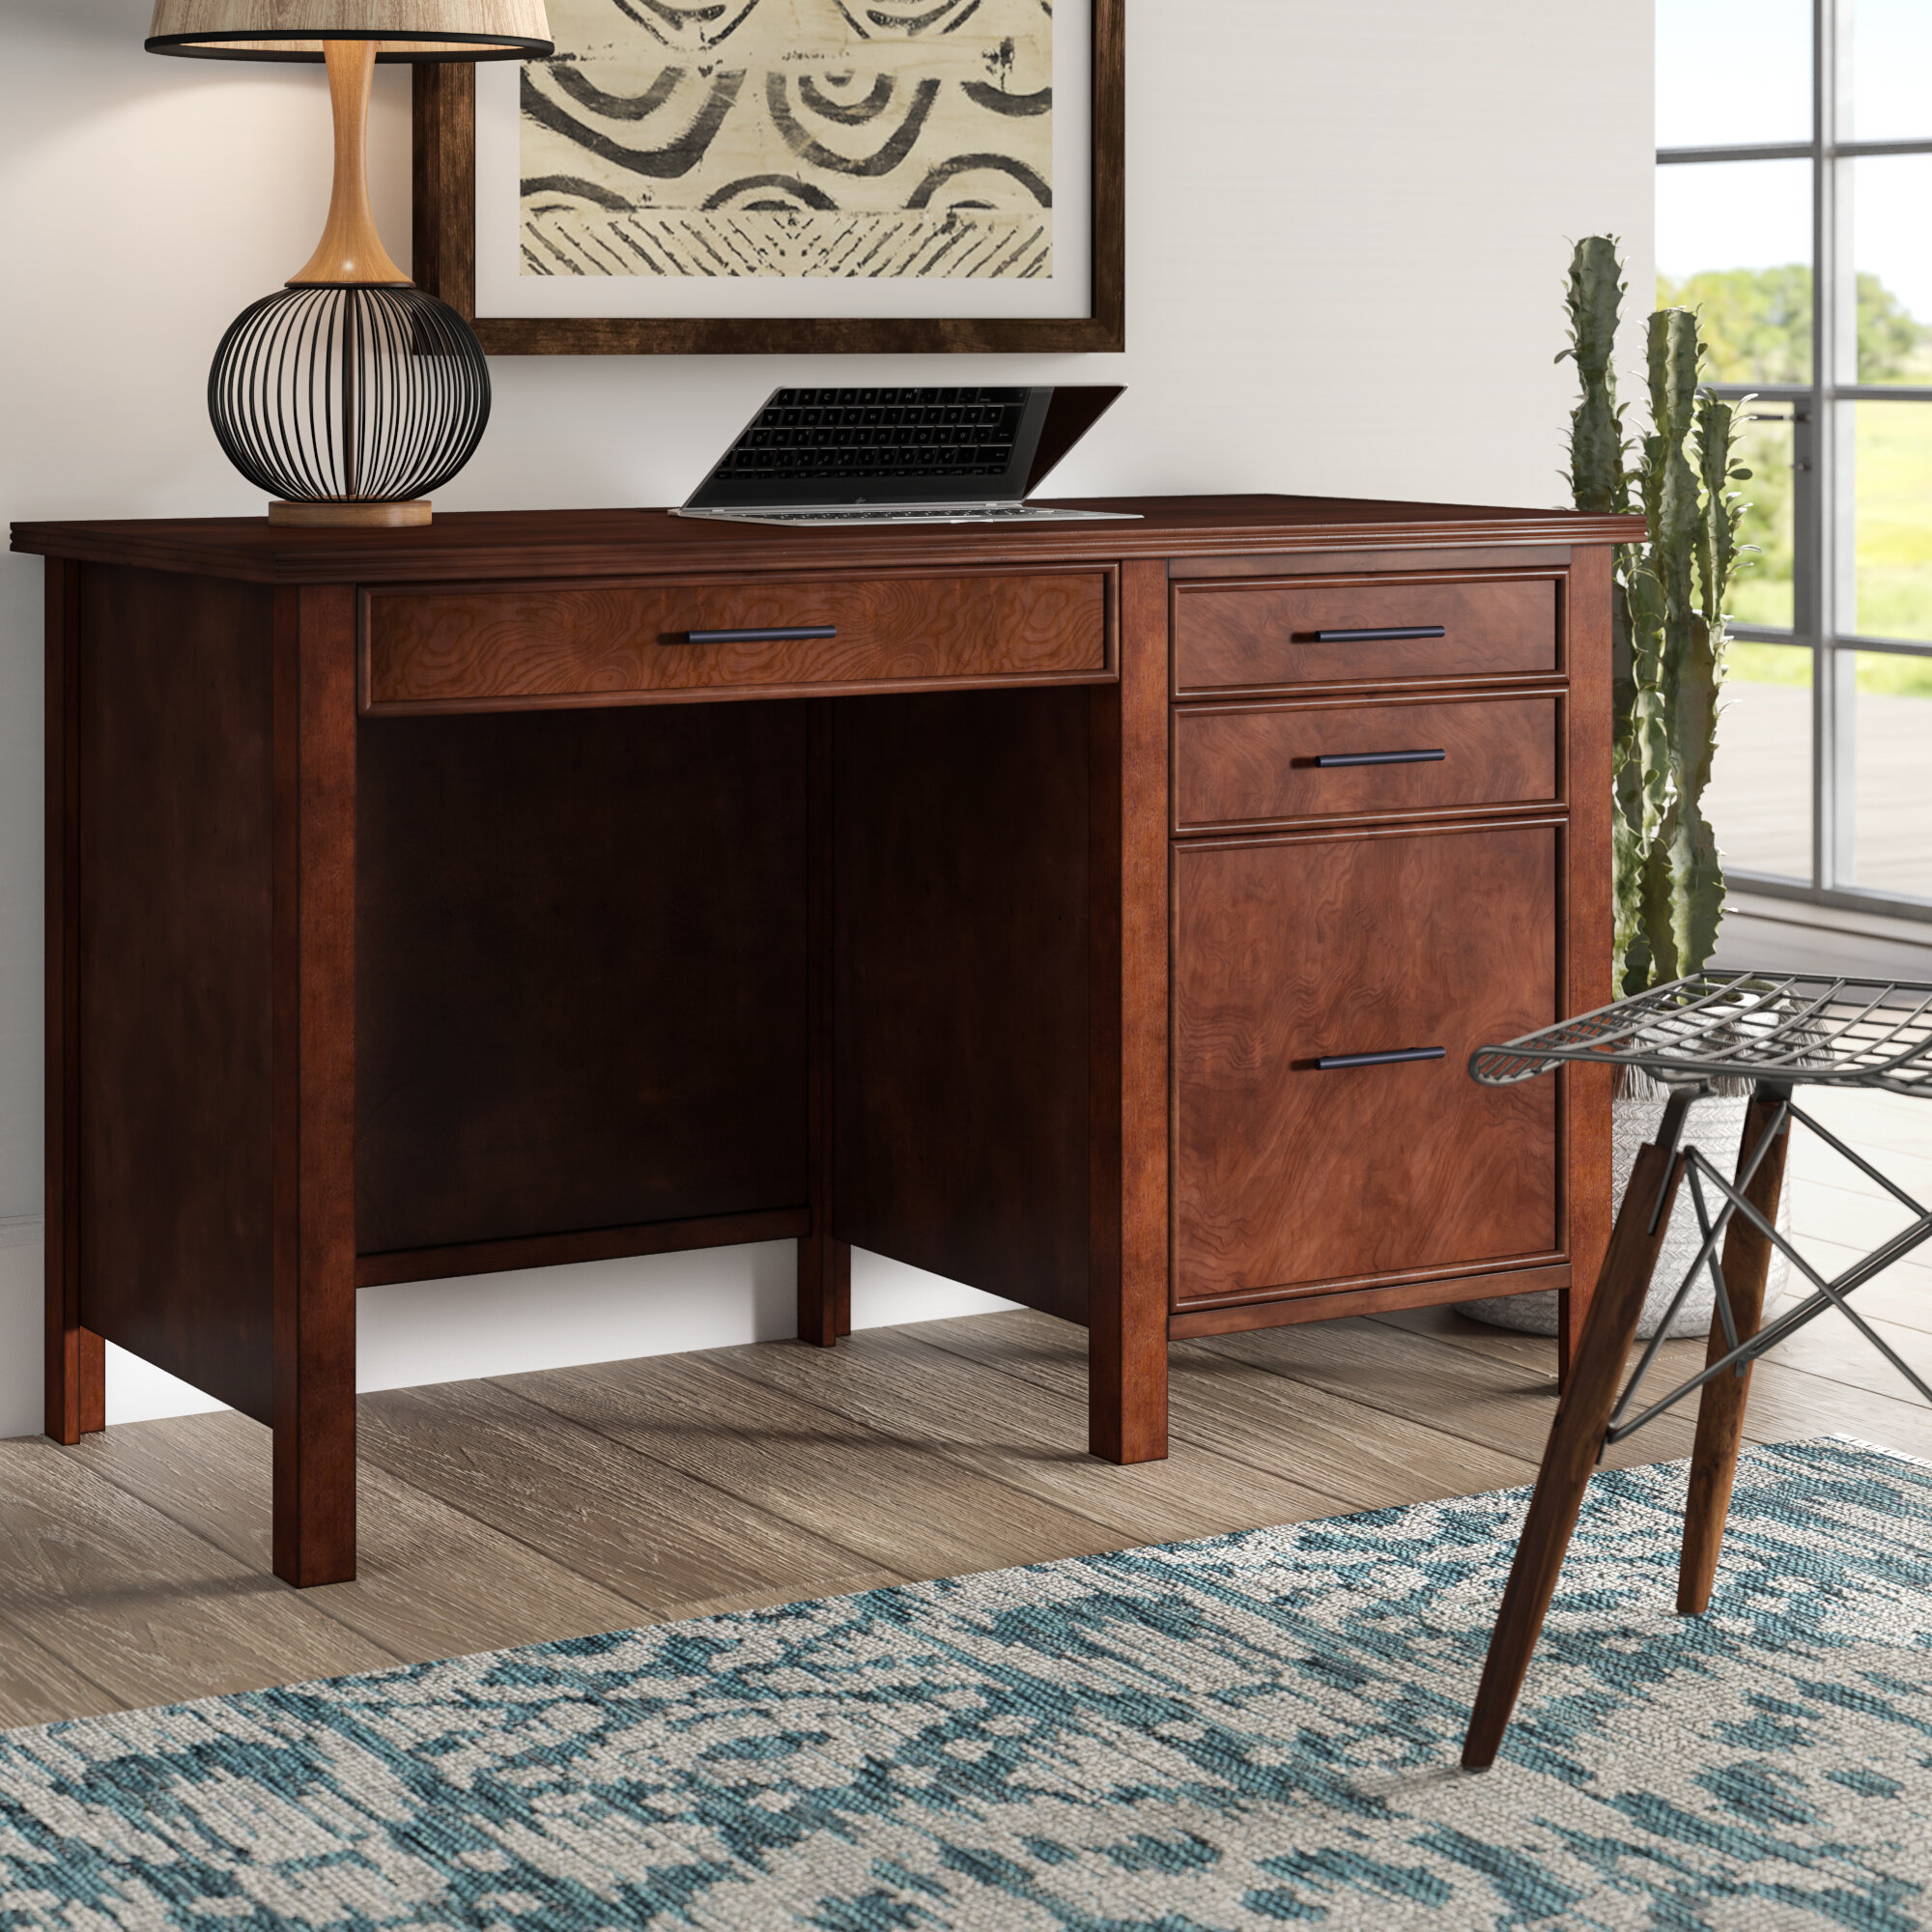 Mistana Yoselin Credenza Desk U0026 Reviews | Wayfair